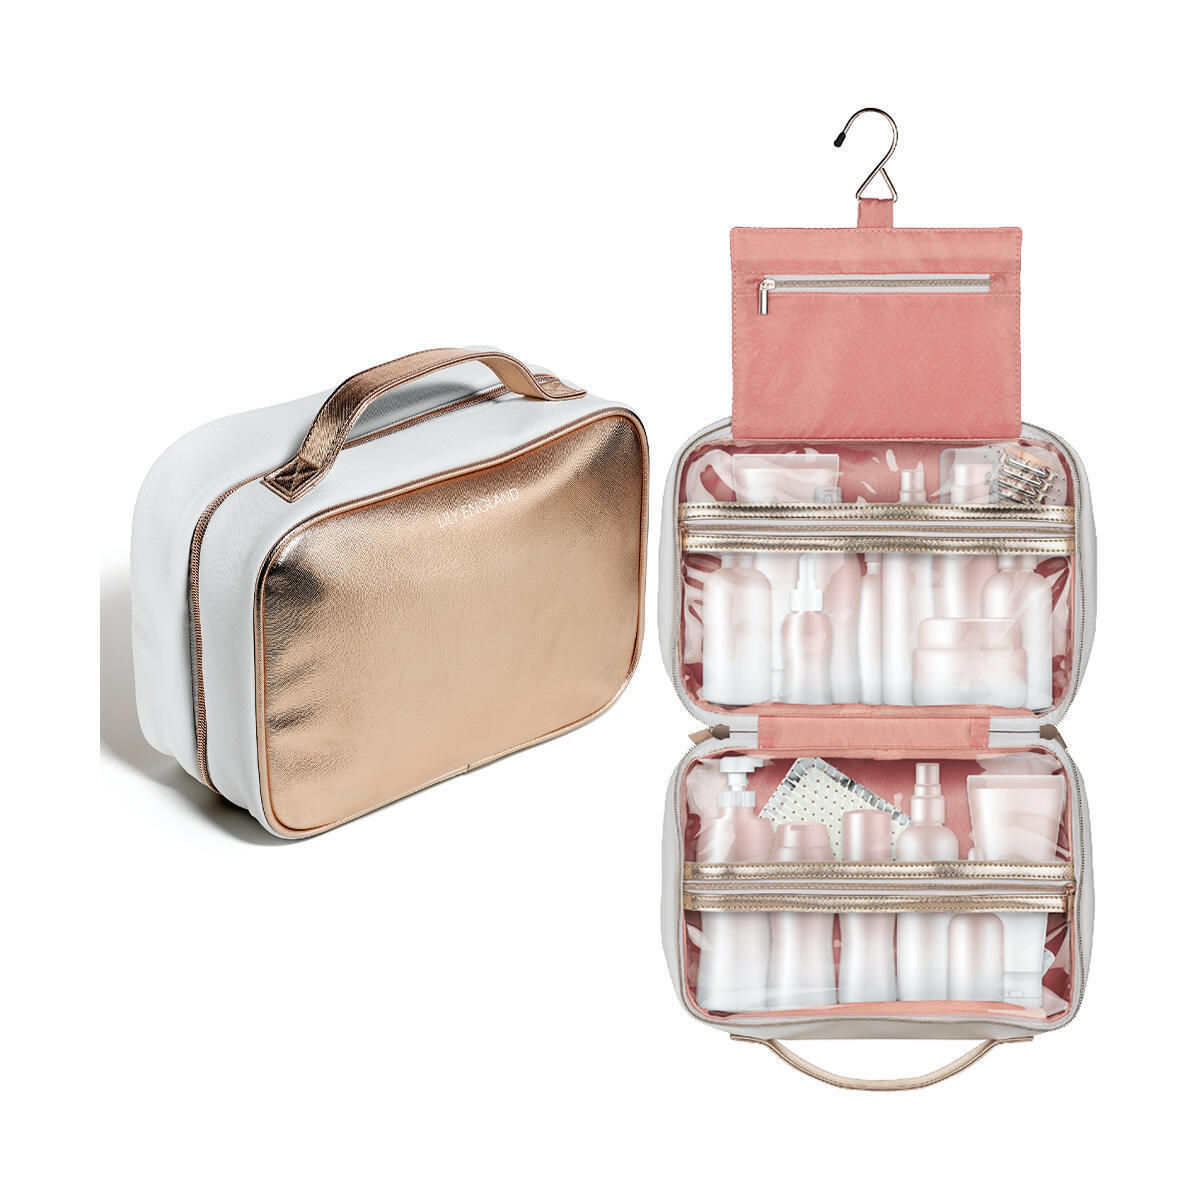 Hanging Toiletry Bag - Large Makeup Bag With Hook - Rose Gold